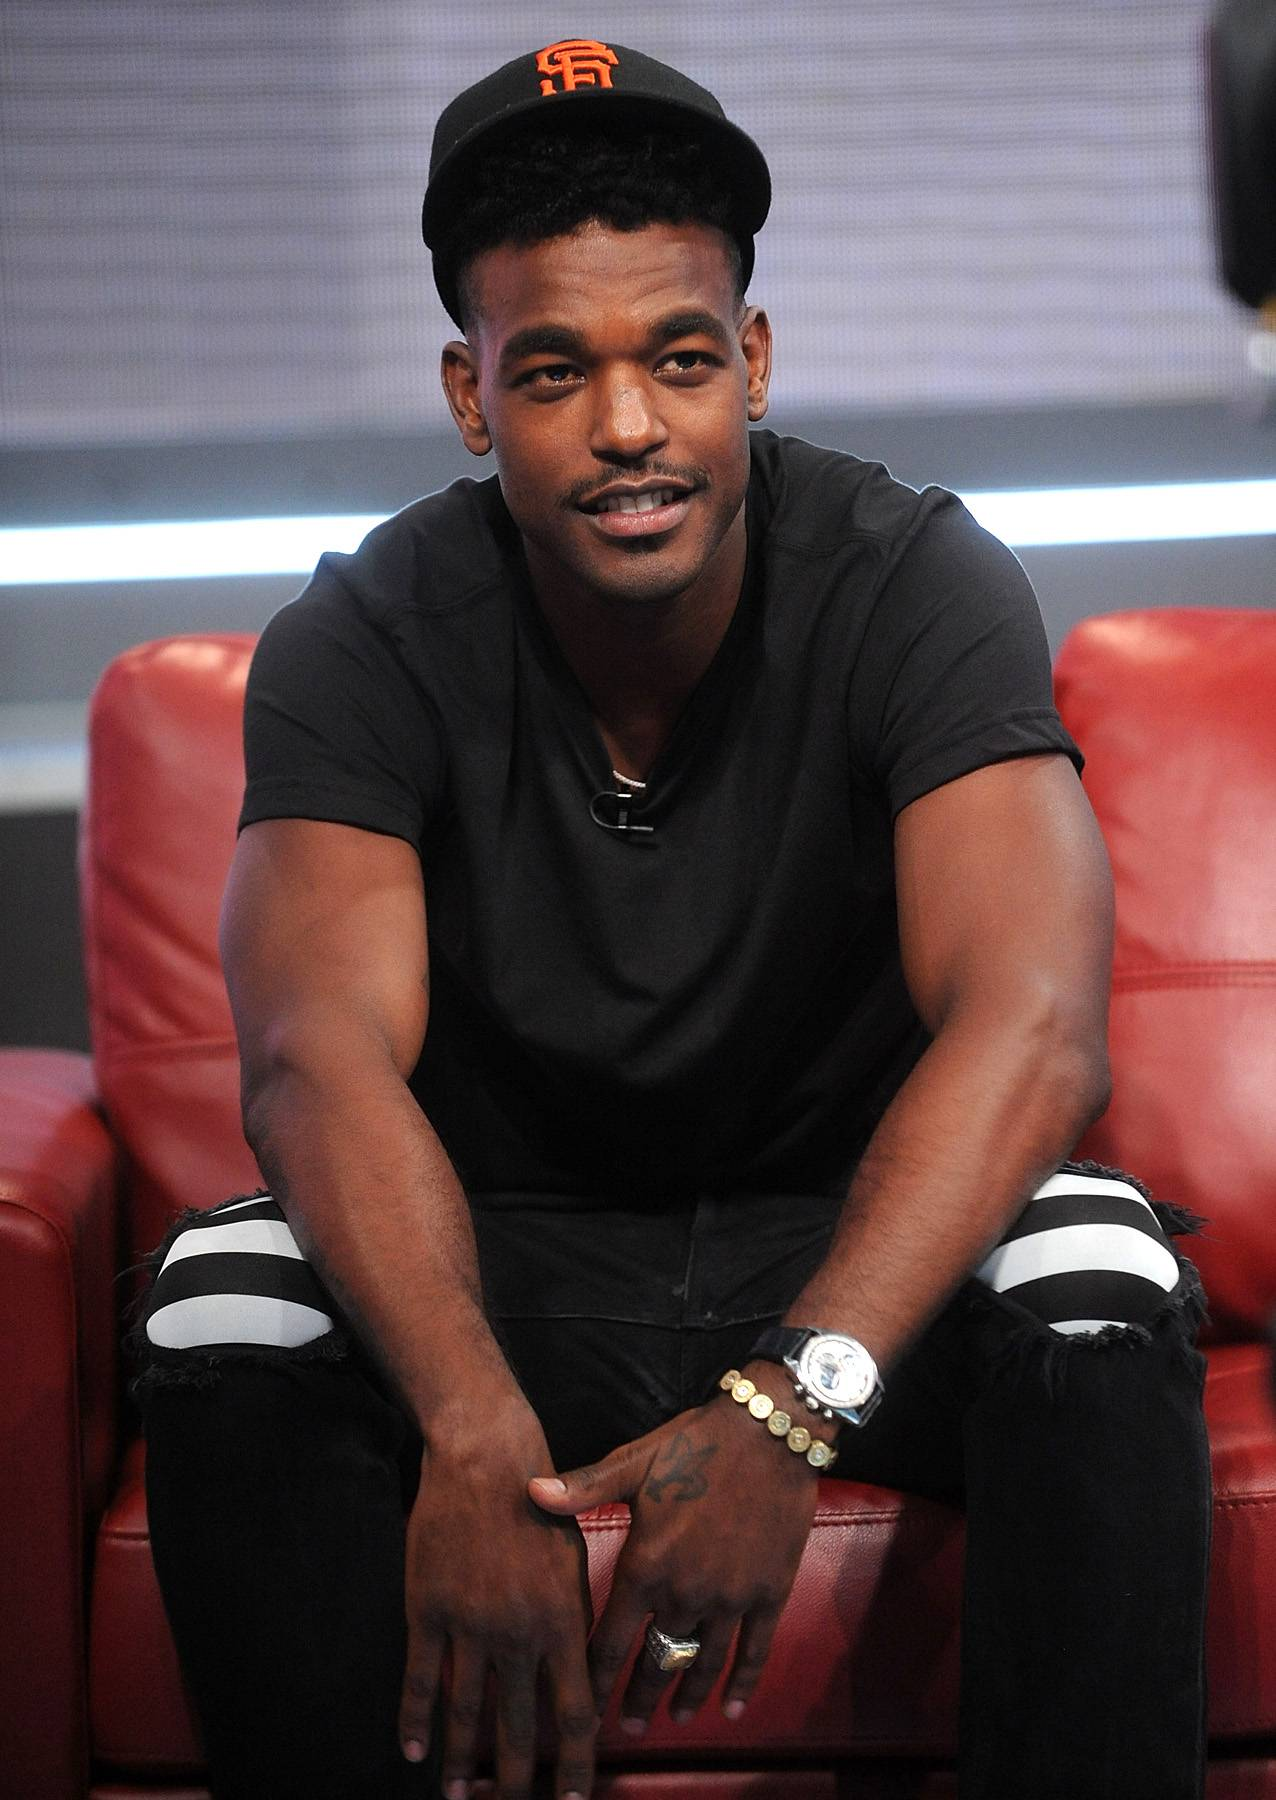 """Luke James Talks Making Music With Jessie J. - We've heard Jessie J gush over """"bae,"""" but now it's his turn. In a new interview with Vibe, Luke talks Jessie, Beyonc? and more. On a possible collaboration with his girlfriend, he says, """"Definitely. Music is in our blood, man. It?s all about a feeling, but nothing contrived. If it?s not right, we won?t do it. It?s about what feels good. It?s gotta be a good vibe."""" Read more on how Luke used to get girls with his """"bird chest,"""" here.(Photo: Brad Barket/BET/Getty Images for BET)"""